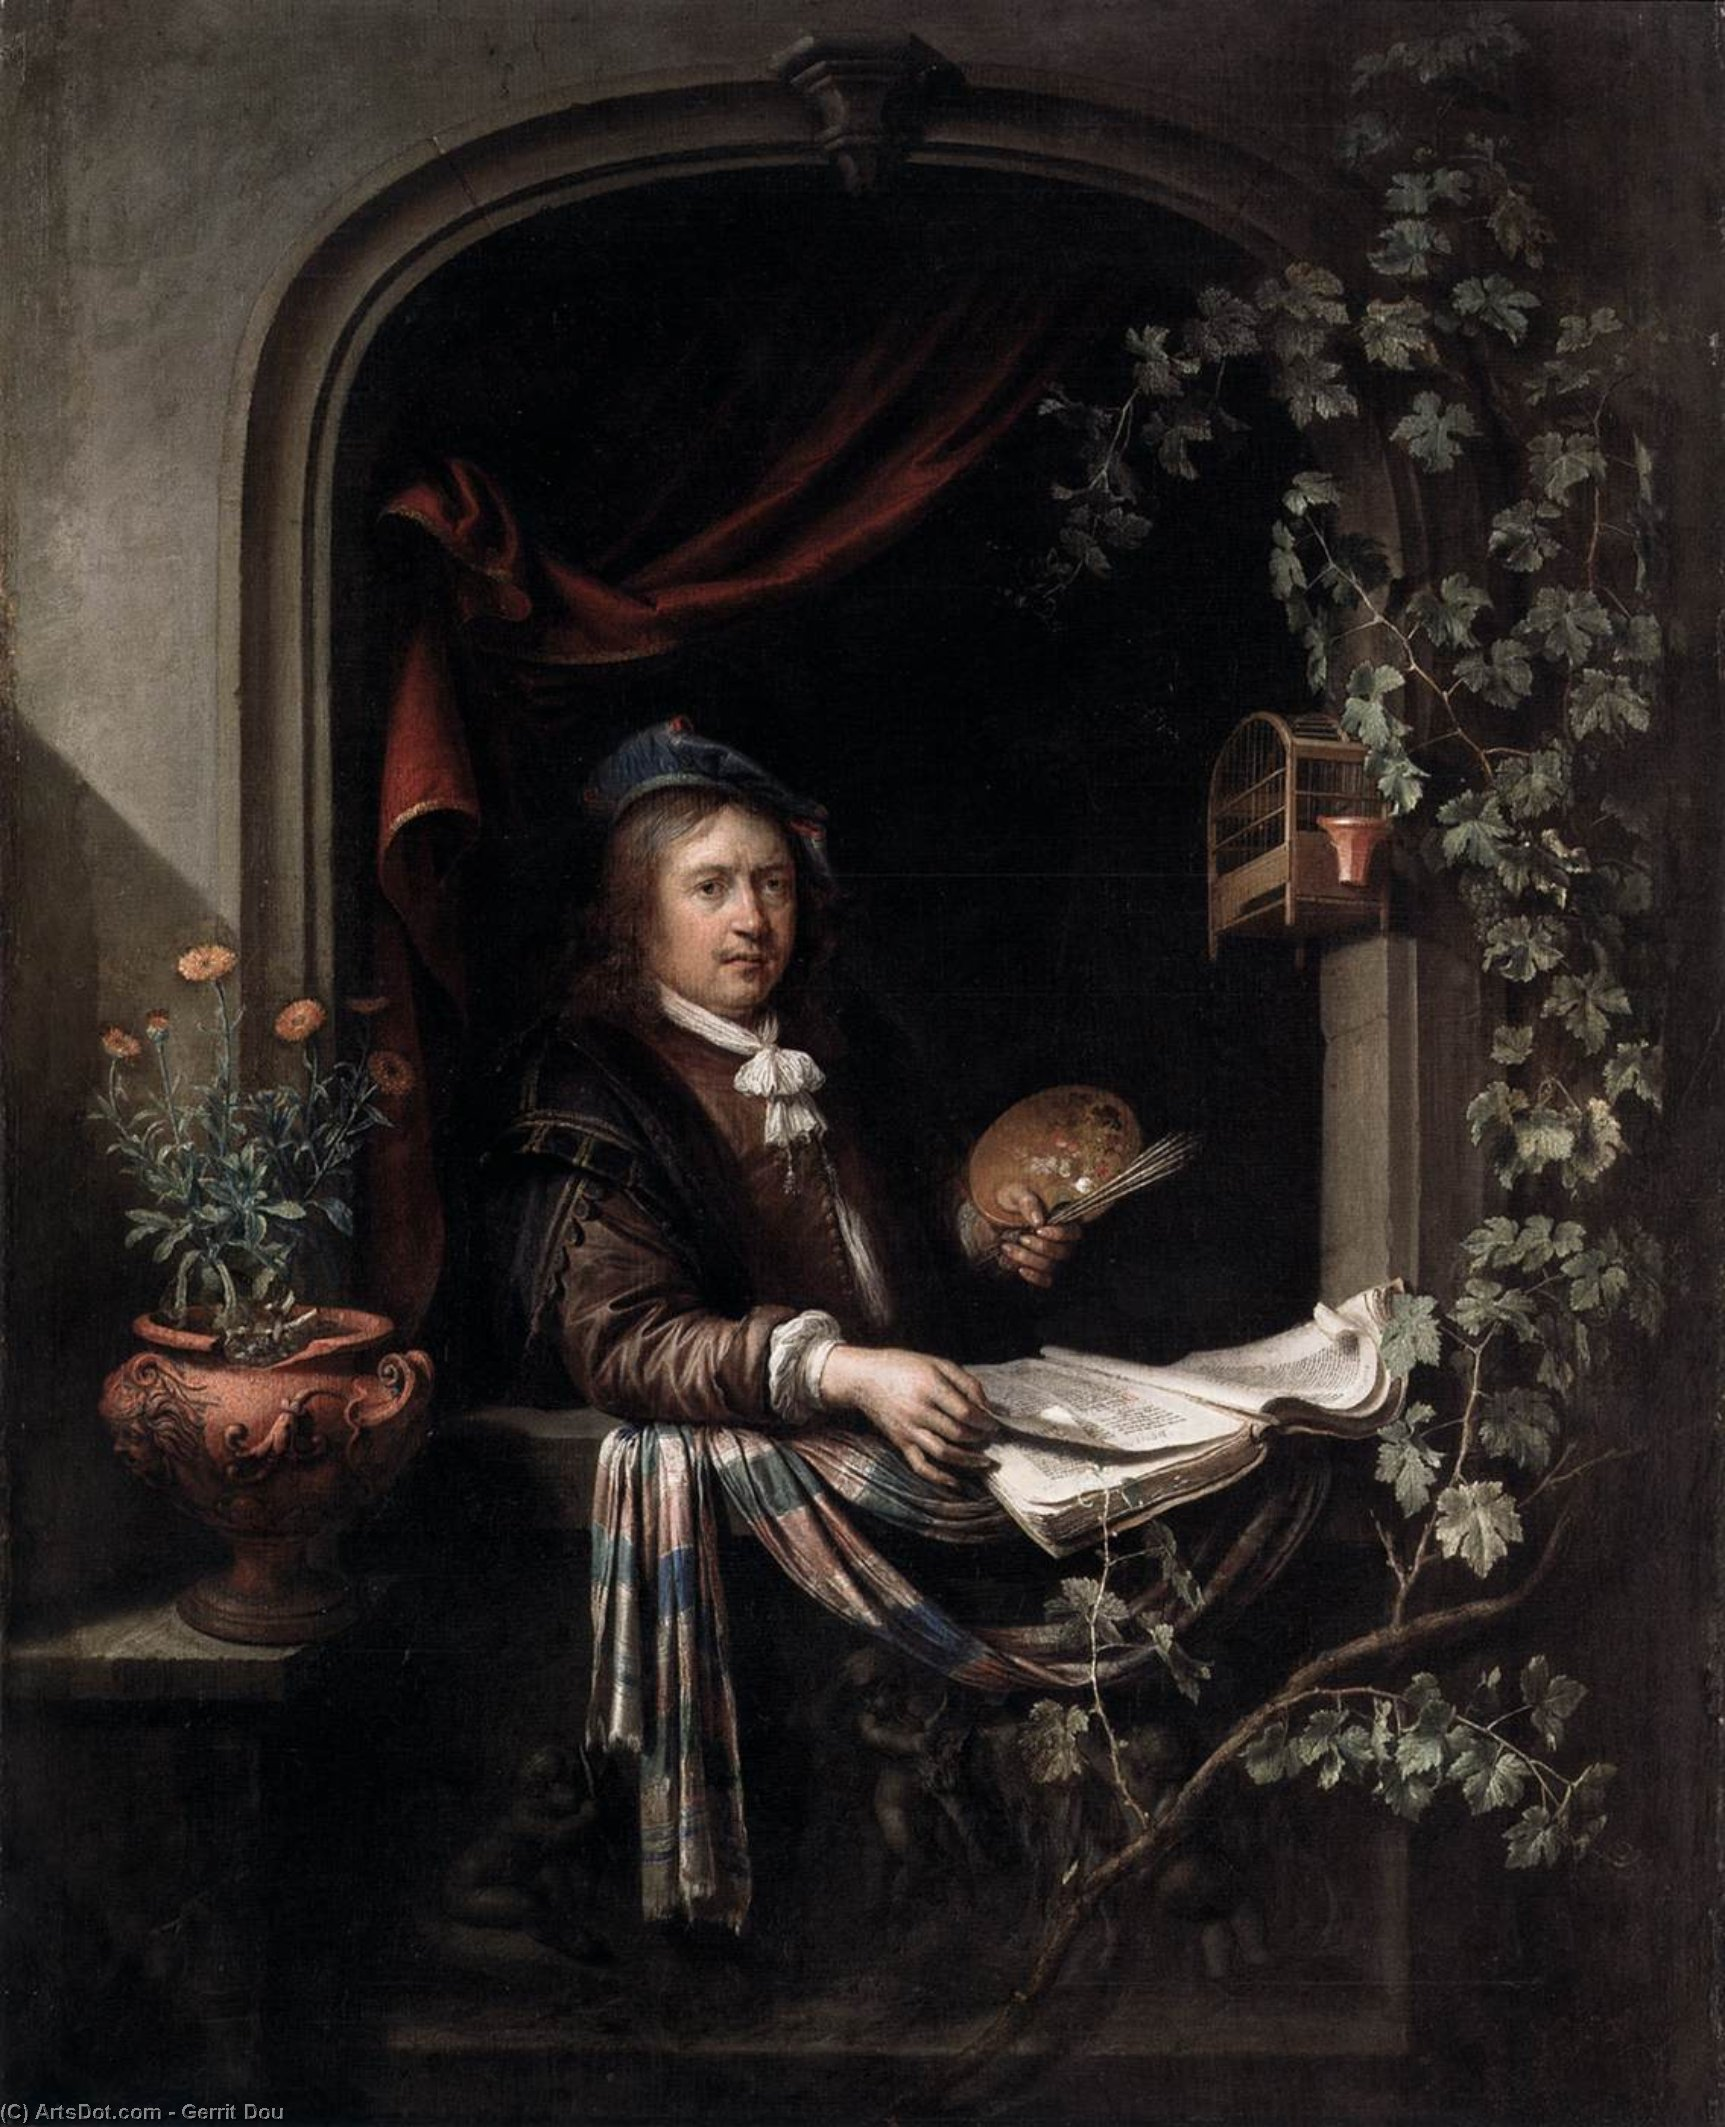 Order Art Reproduction : Self-Portrait, 1665 by Gerrit (Gérard) Dou (1613-1675, Netherlands) | ArtsDot.com